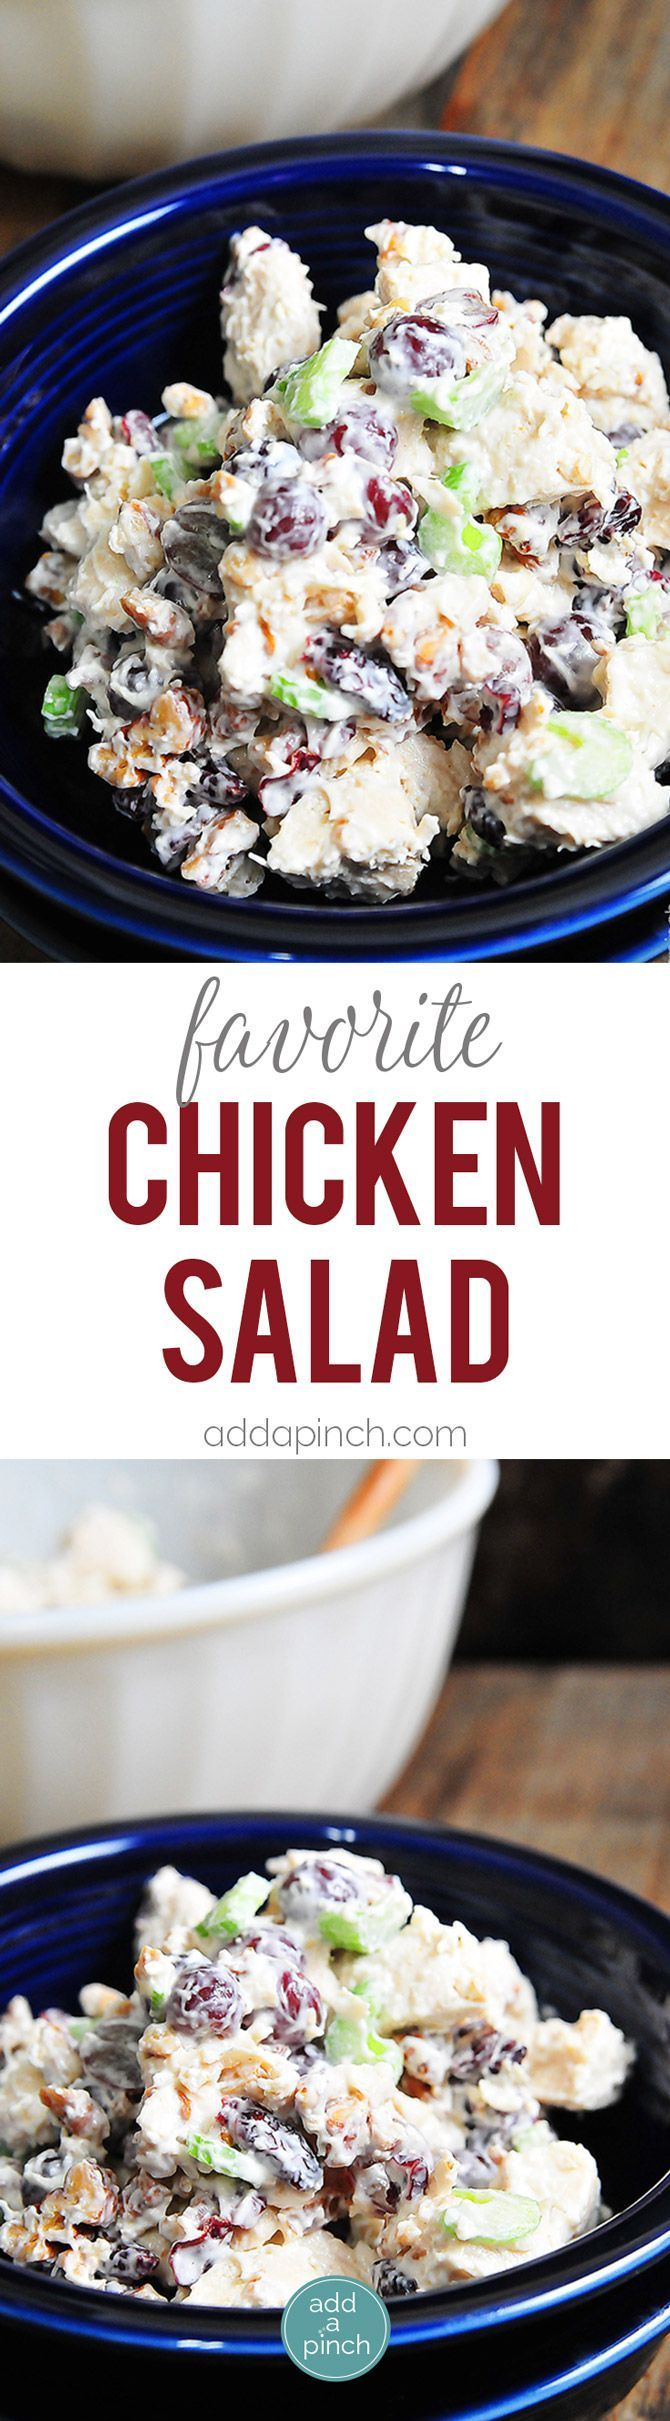 awesome Chicken Salad with Grapes Recipe - Cooking | Add a Pinchby http://dezdemooncooking.gdn